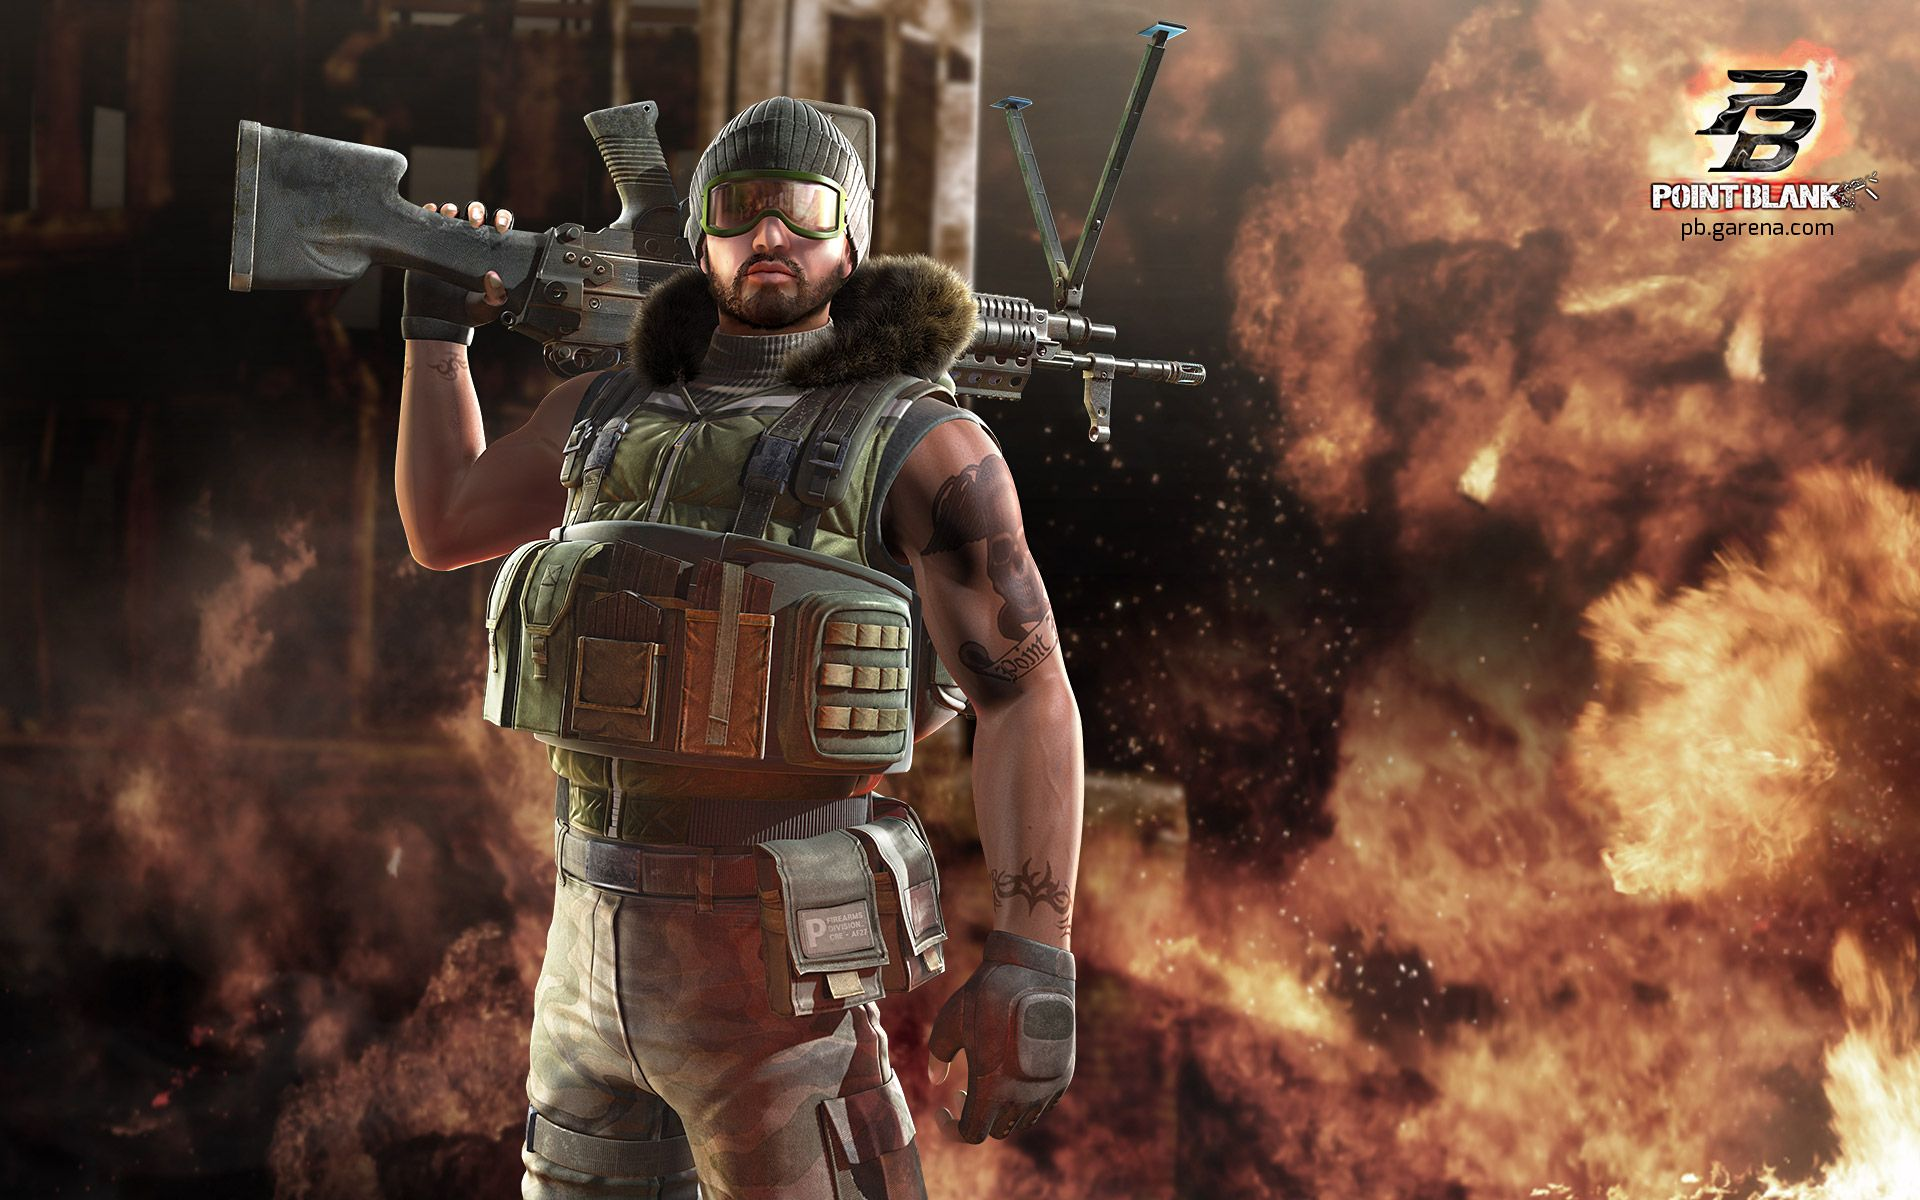 Point Blank Online Images Update New Character Wallpaper And